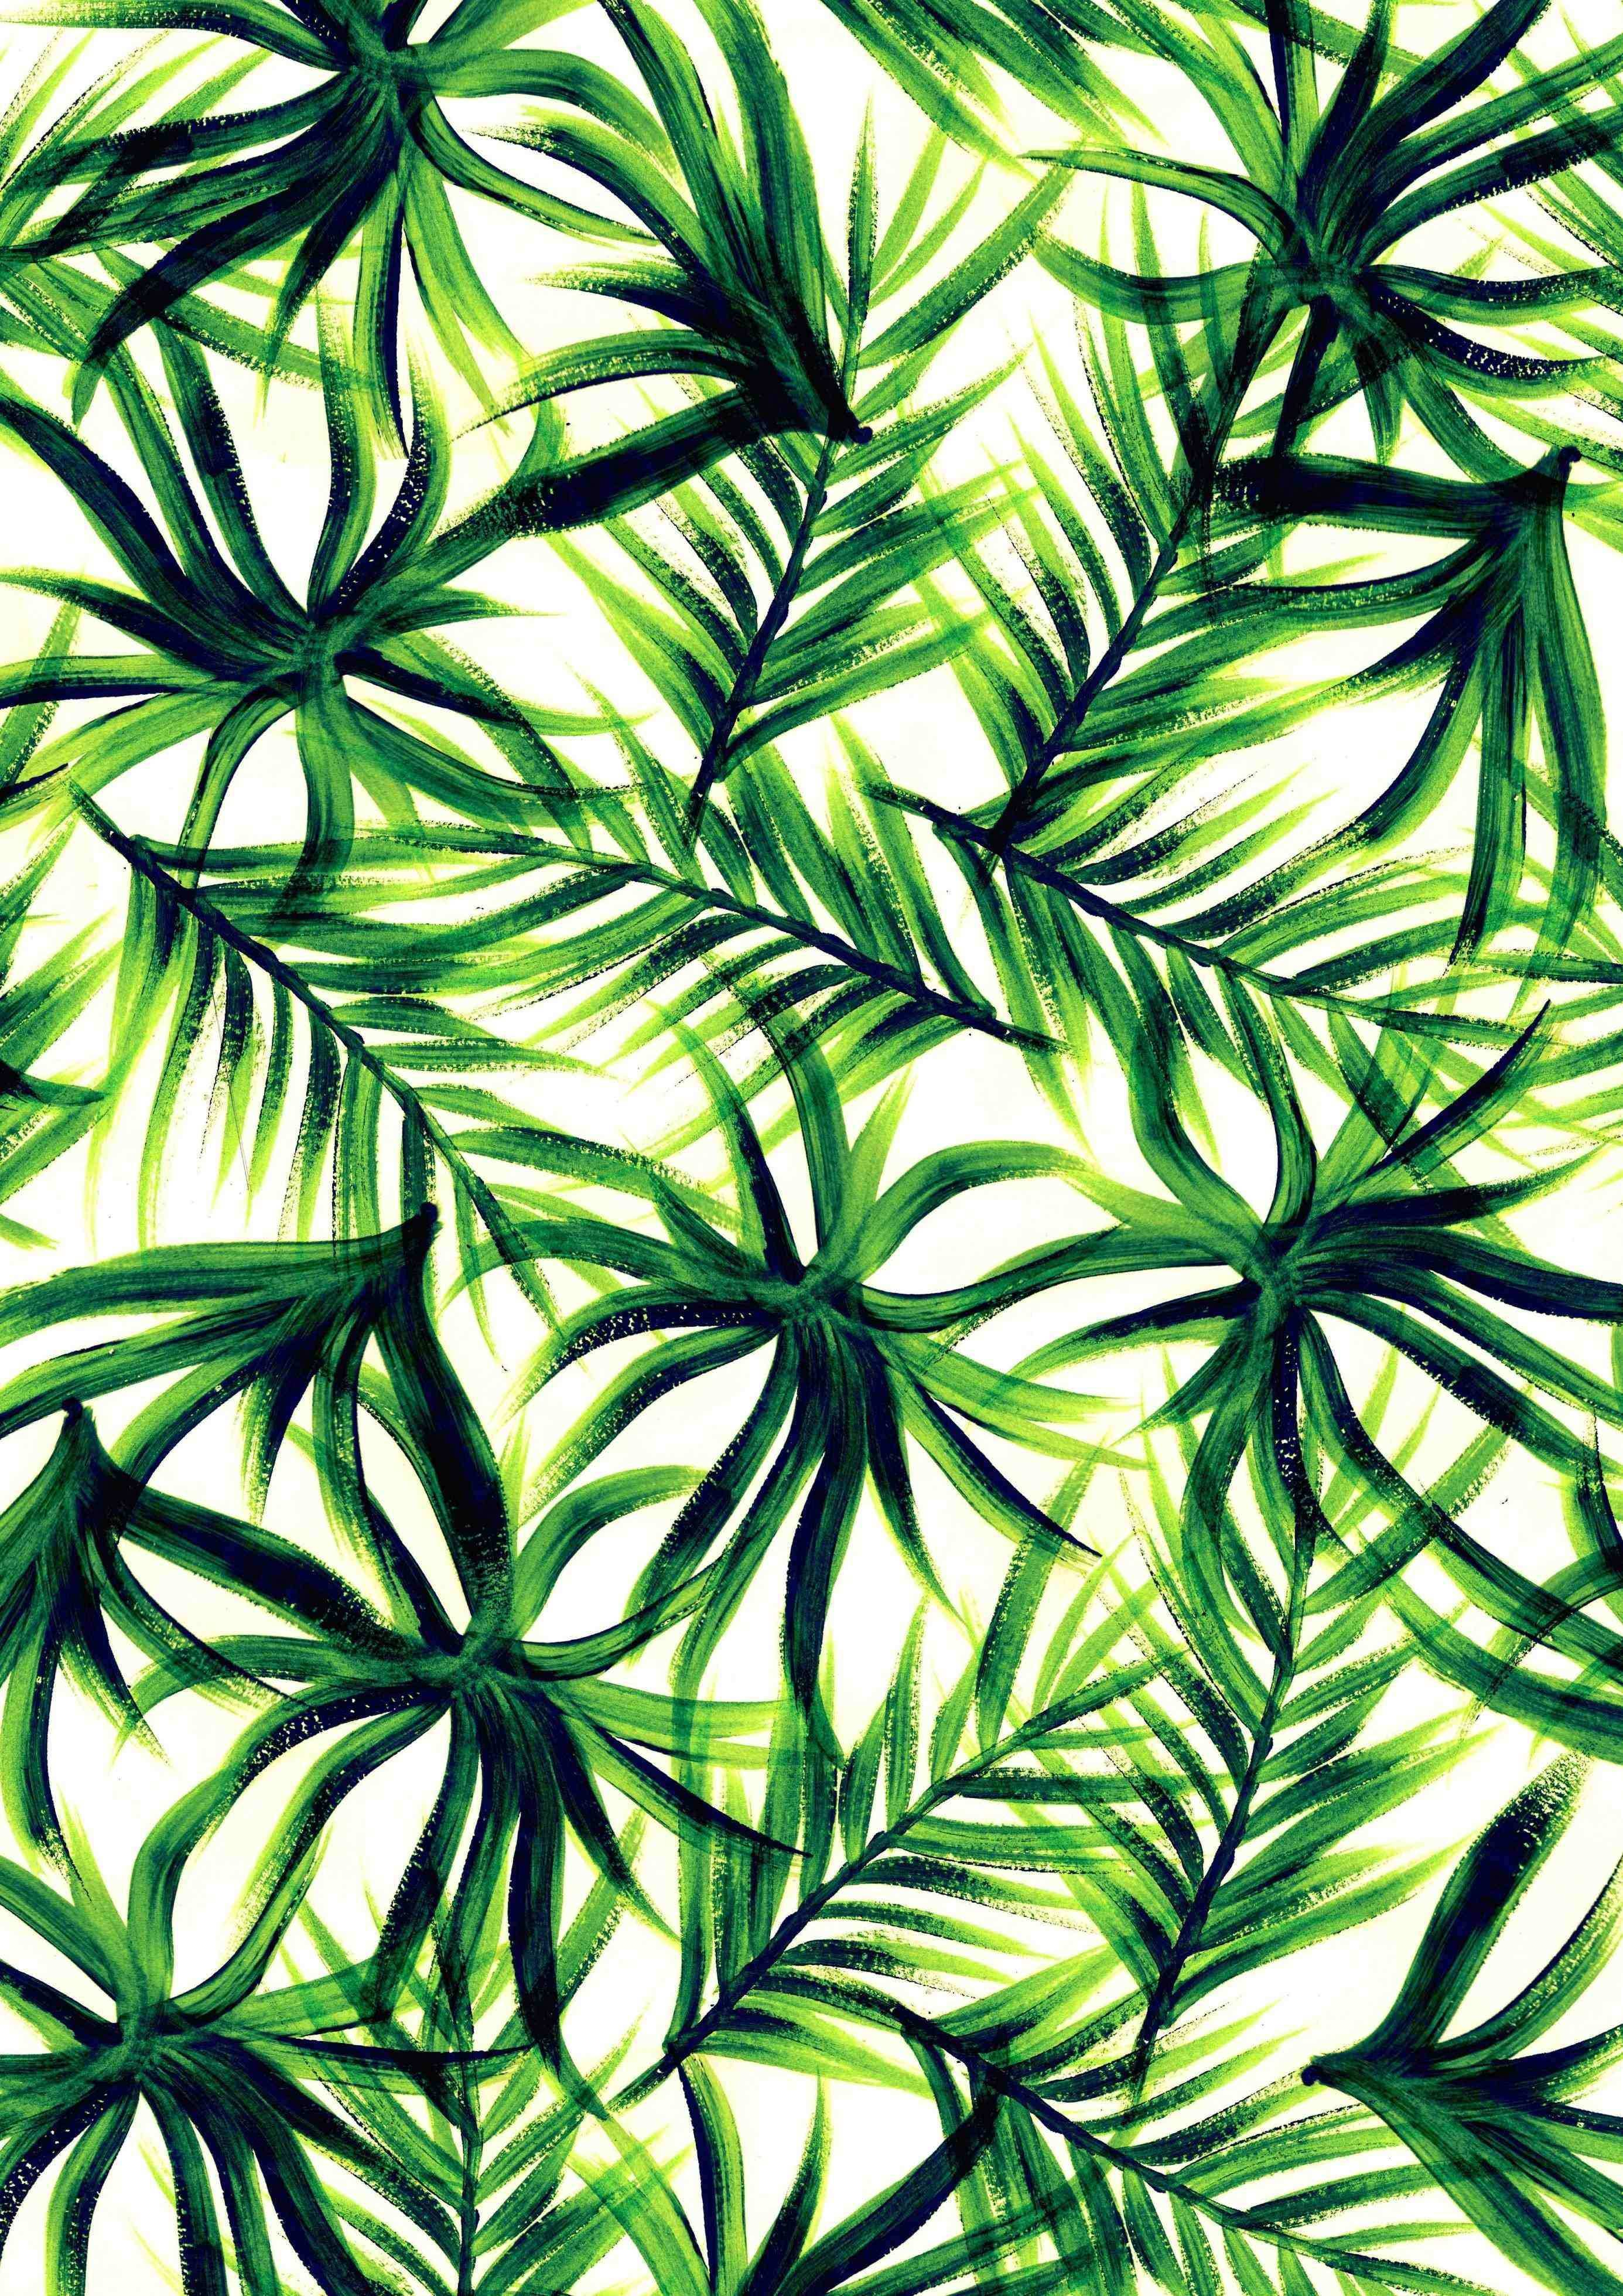 Drawn palm tree background Pencil and in color drawn